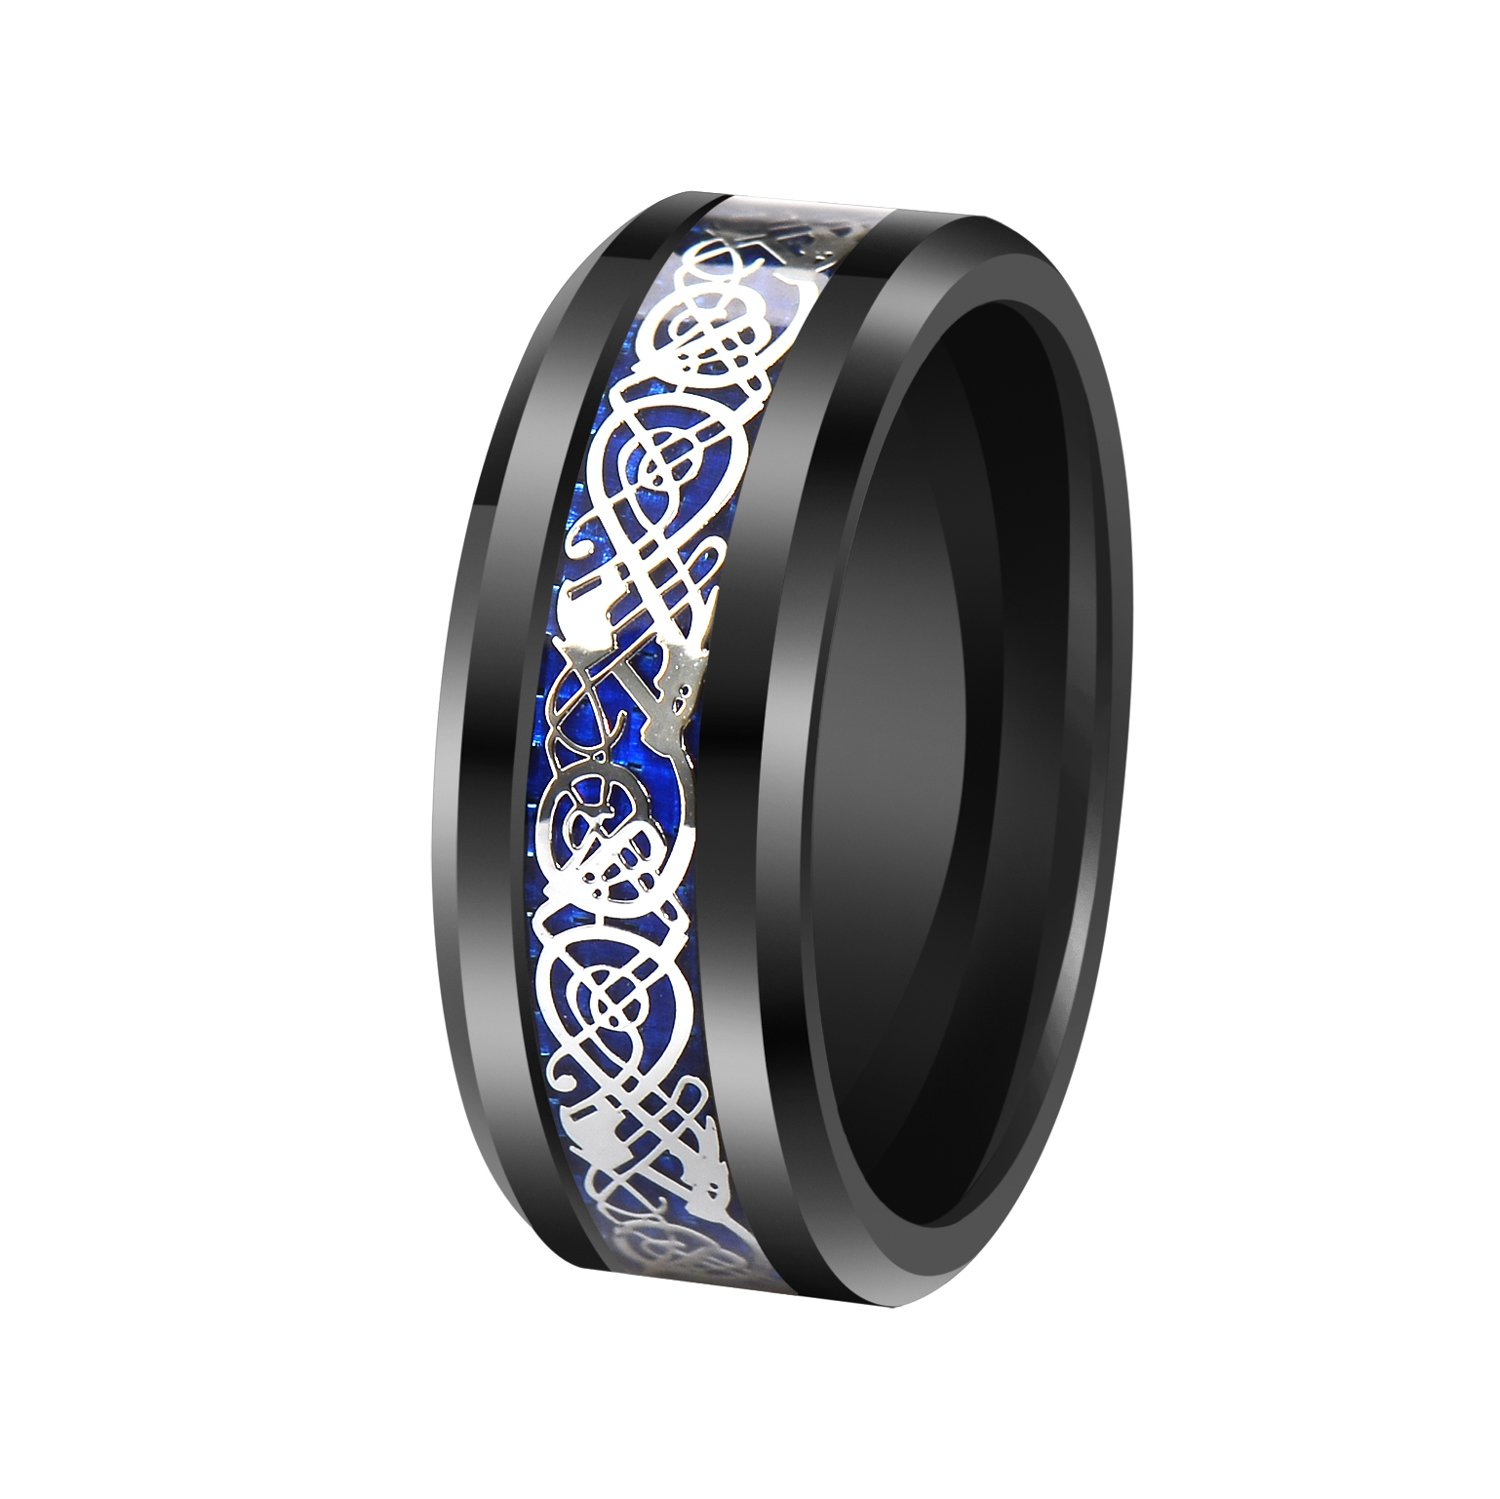 finish by cavalier inlay black men sleek dp titanium carbon comfort rings ring for polished fit band wedding jewelers with fiber lightweight